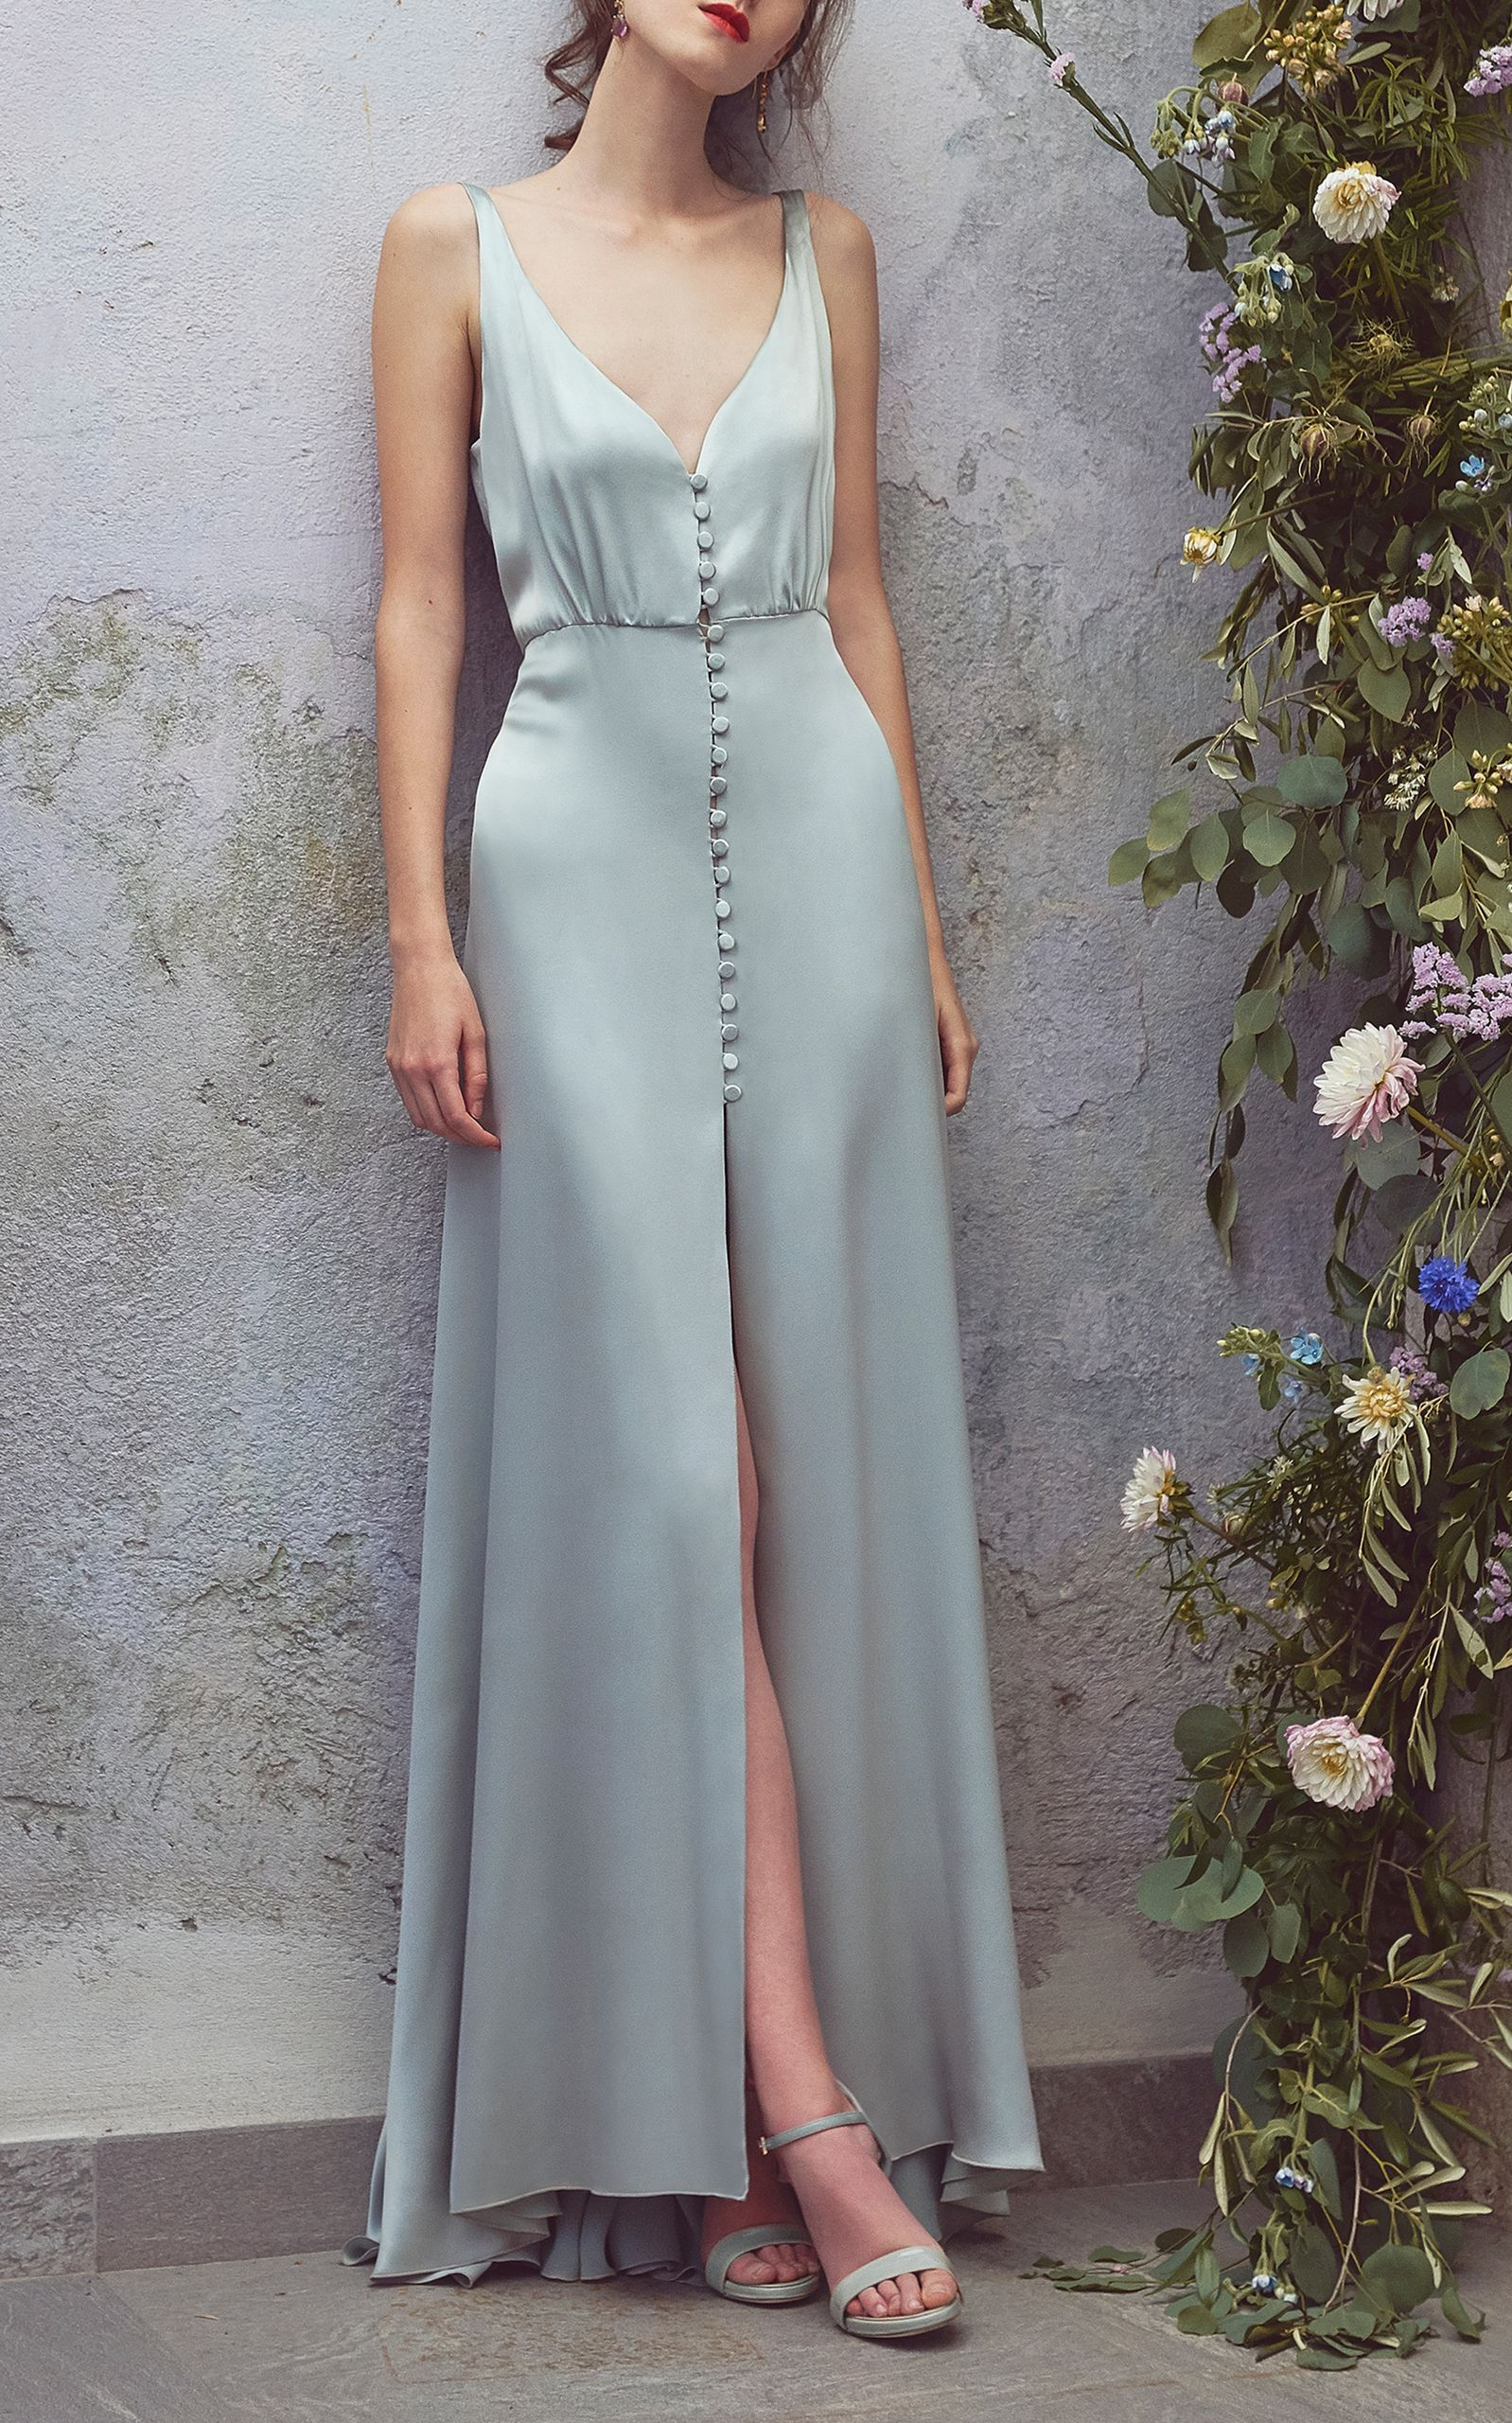 Satin Full Length Dress by LUISA BECCARIA for Preorder on Moda Operandi a0a5181f7ac1